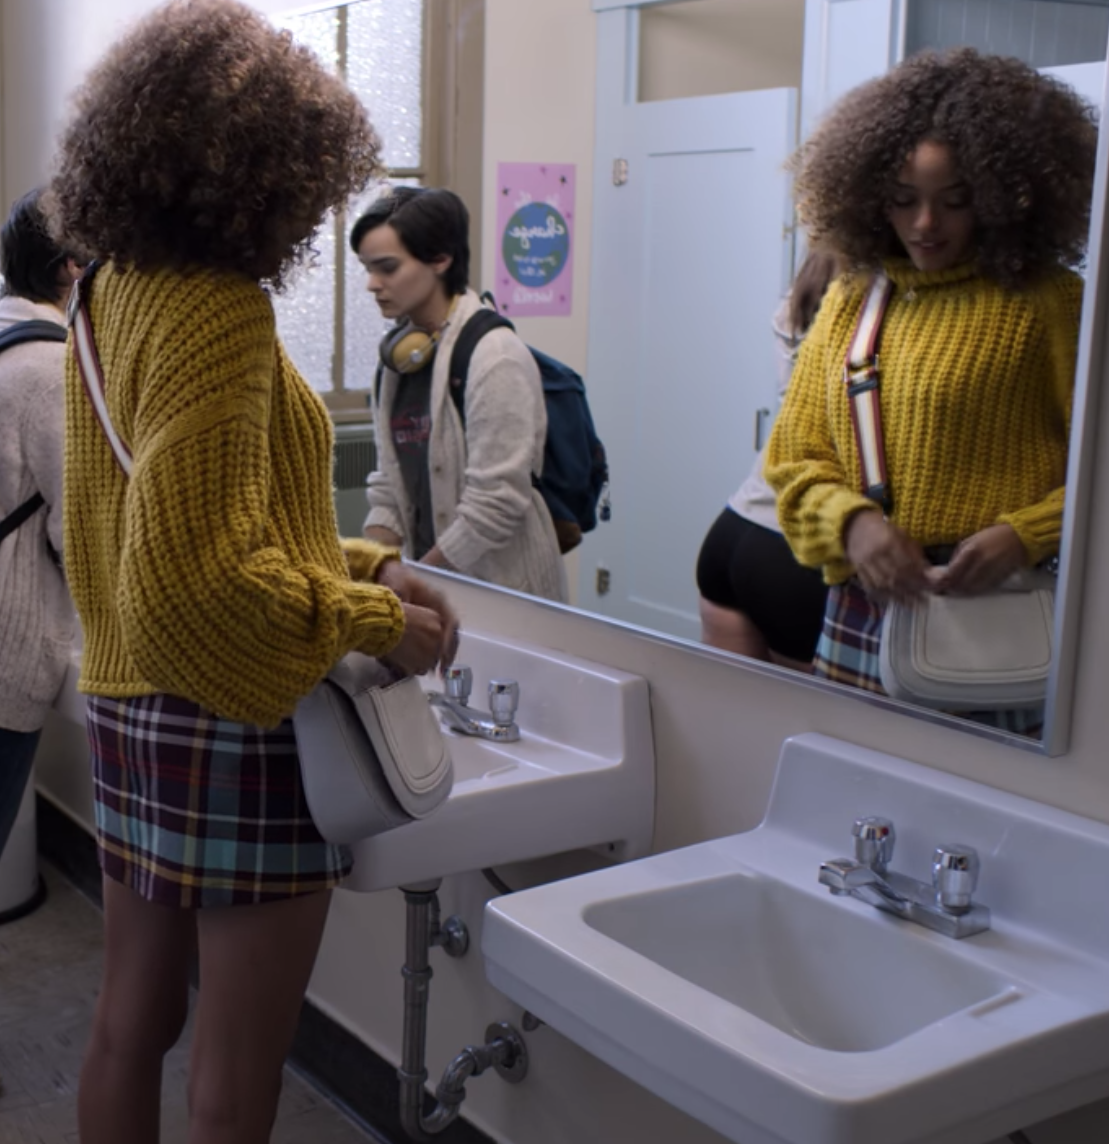 2cfcc887b14 We don't get a lot of scenes of Tabitha in this yellow turtleneck sweater  and plaid skirt. This was taken from the opening scene of the show.